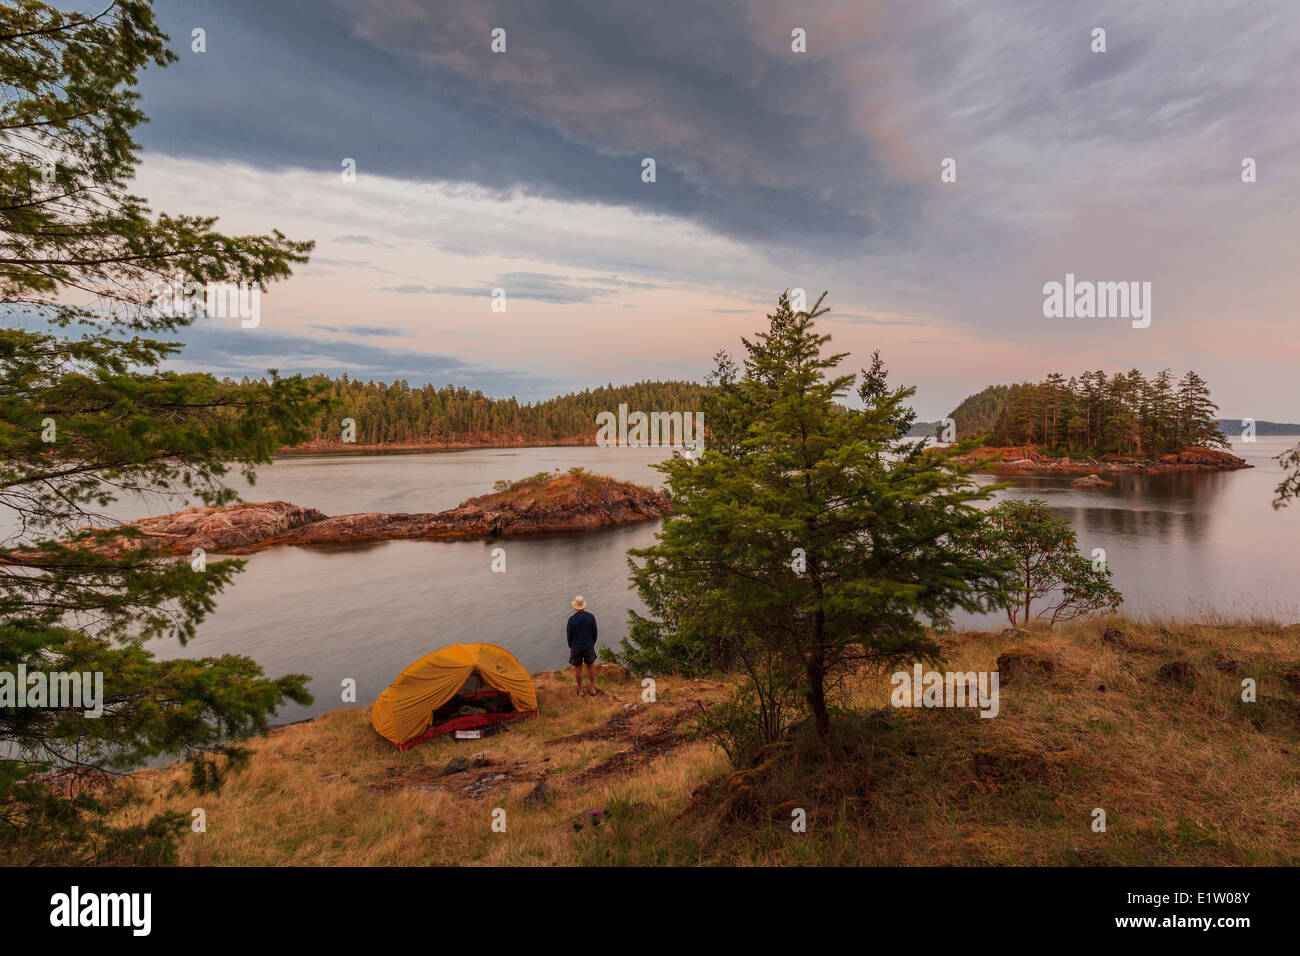 A camper enjoys the sunset on Penn Island in Sutil Channel between Read and Cortes Islands British Columbia Canada.Model - Stock Image